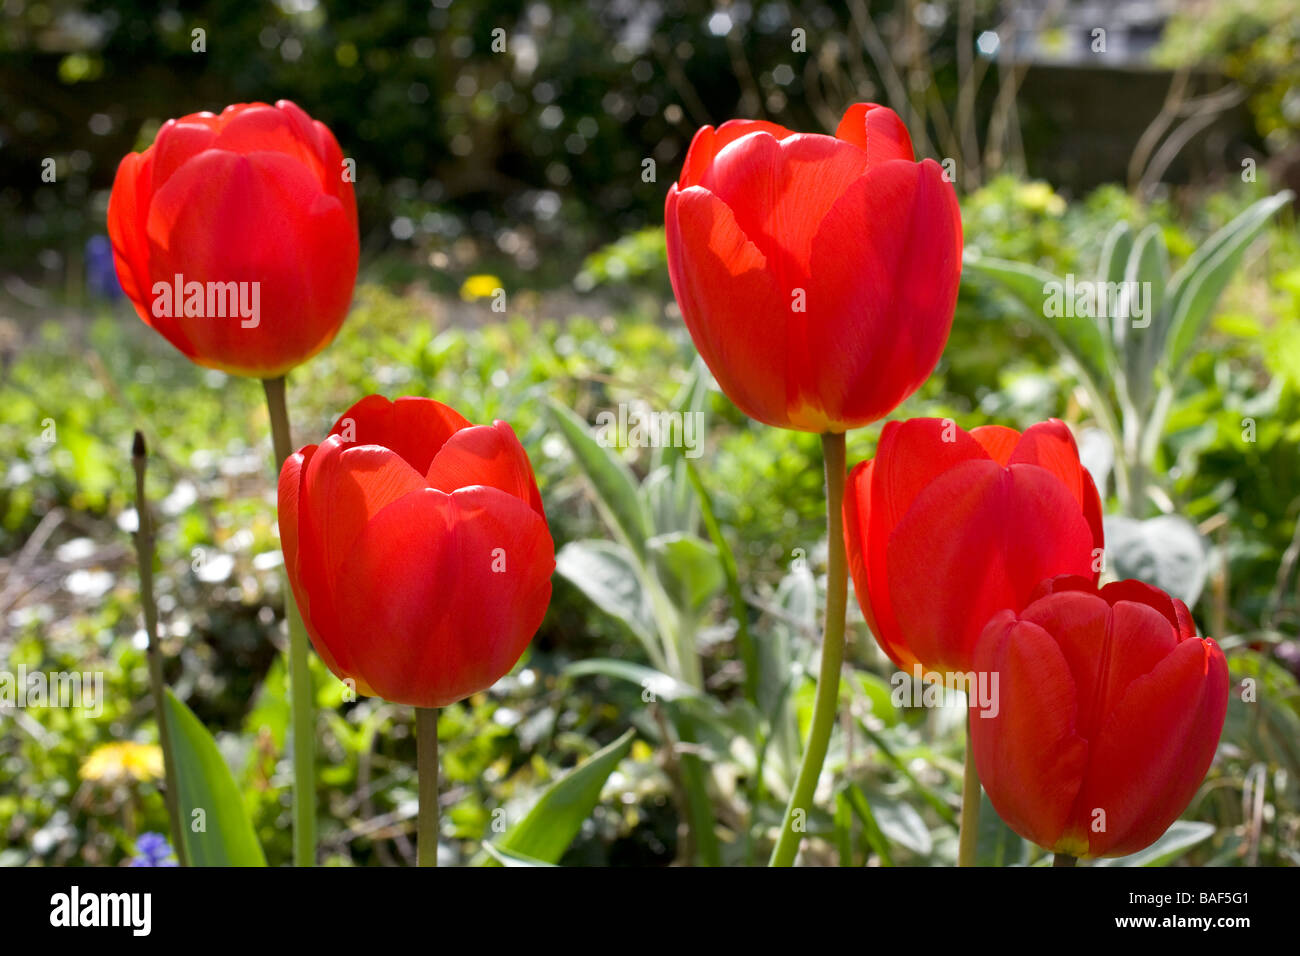 tulip,tulips,flower,flowers,red,flora,botany,botanic - Stock Image